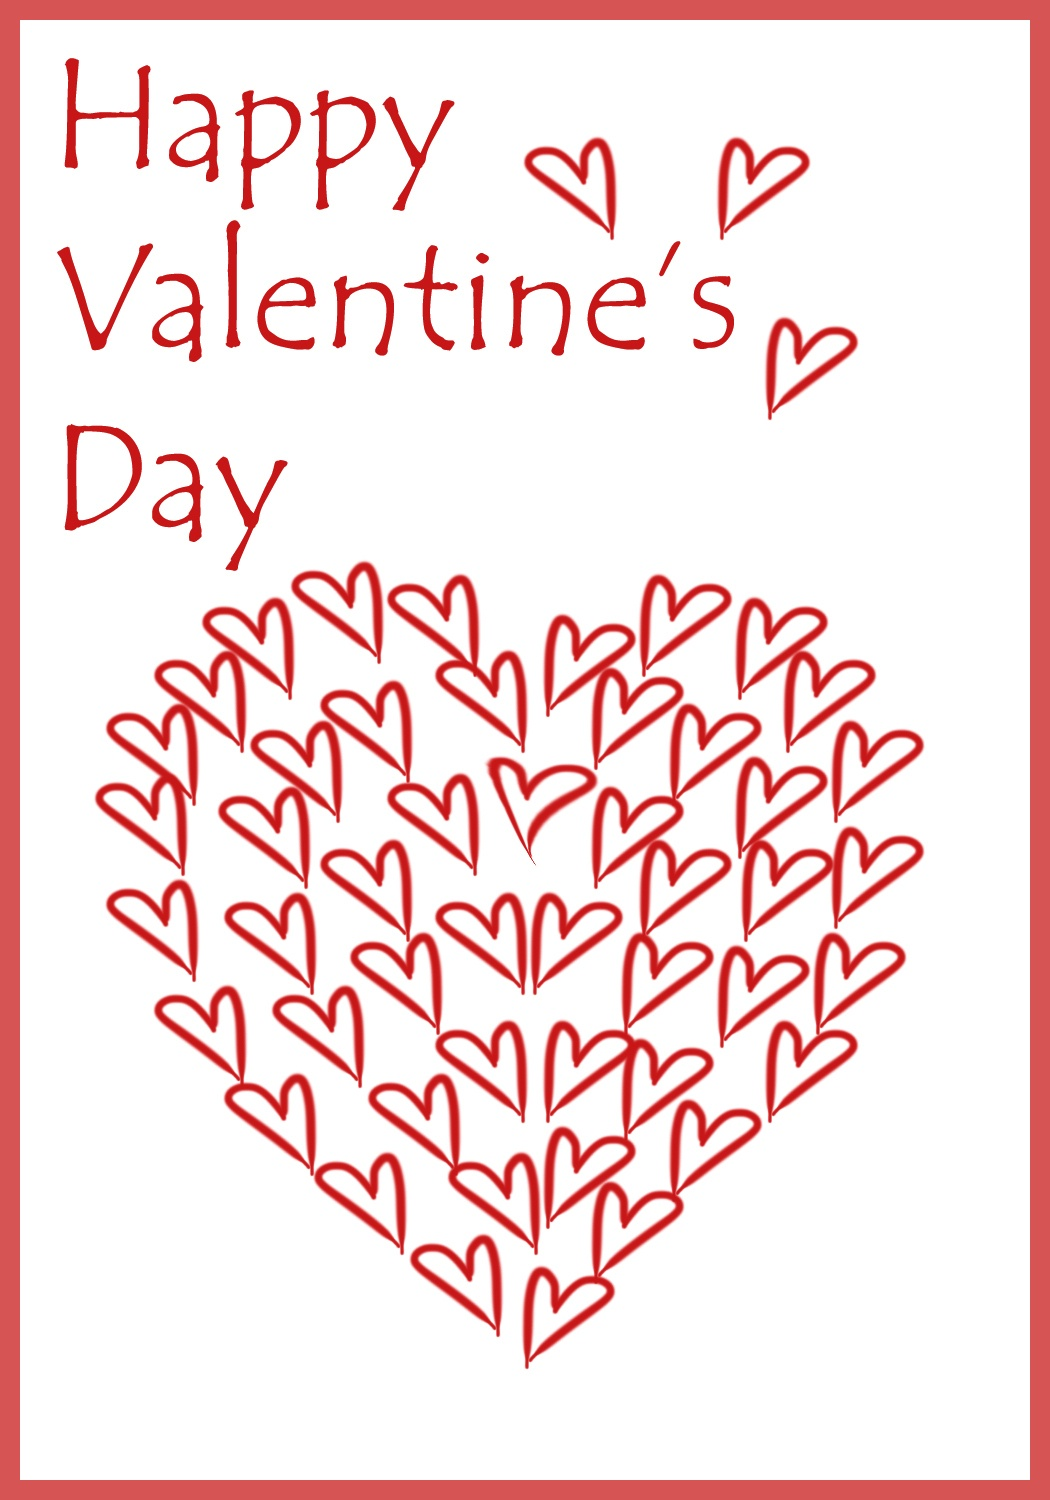 Free Printable Valentine Cards - Free Printable Personalised Cards